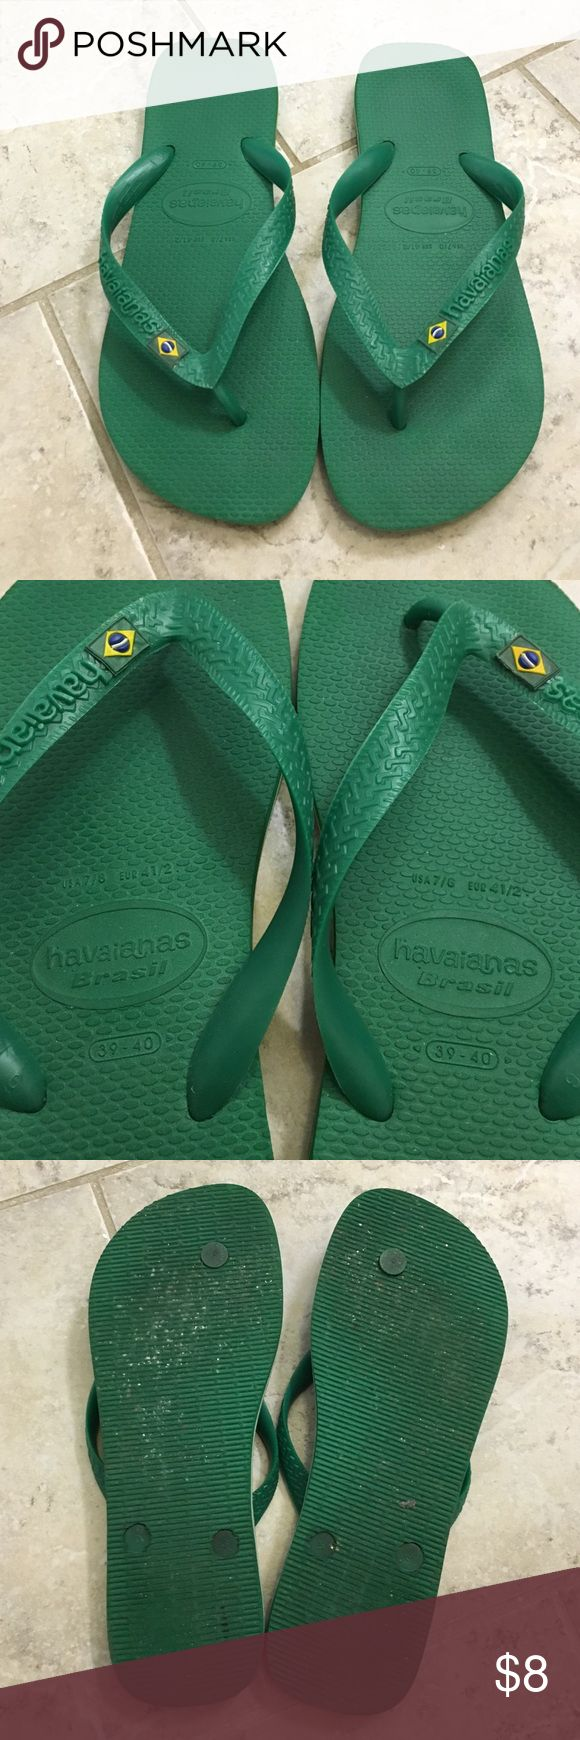 Havianas Brazilian Flip-flops Worn green 39-40 Havianas flip-flops. Fits an 8.5 perfectly. Very comfortable and minimally worn to the beach. Found myself wearing my white and black ones more than the green. Smoke free home. Offers always welcome! Havaianas Shoes Sandals